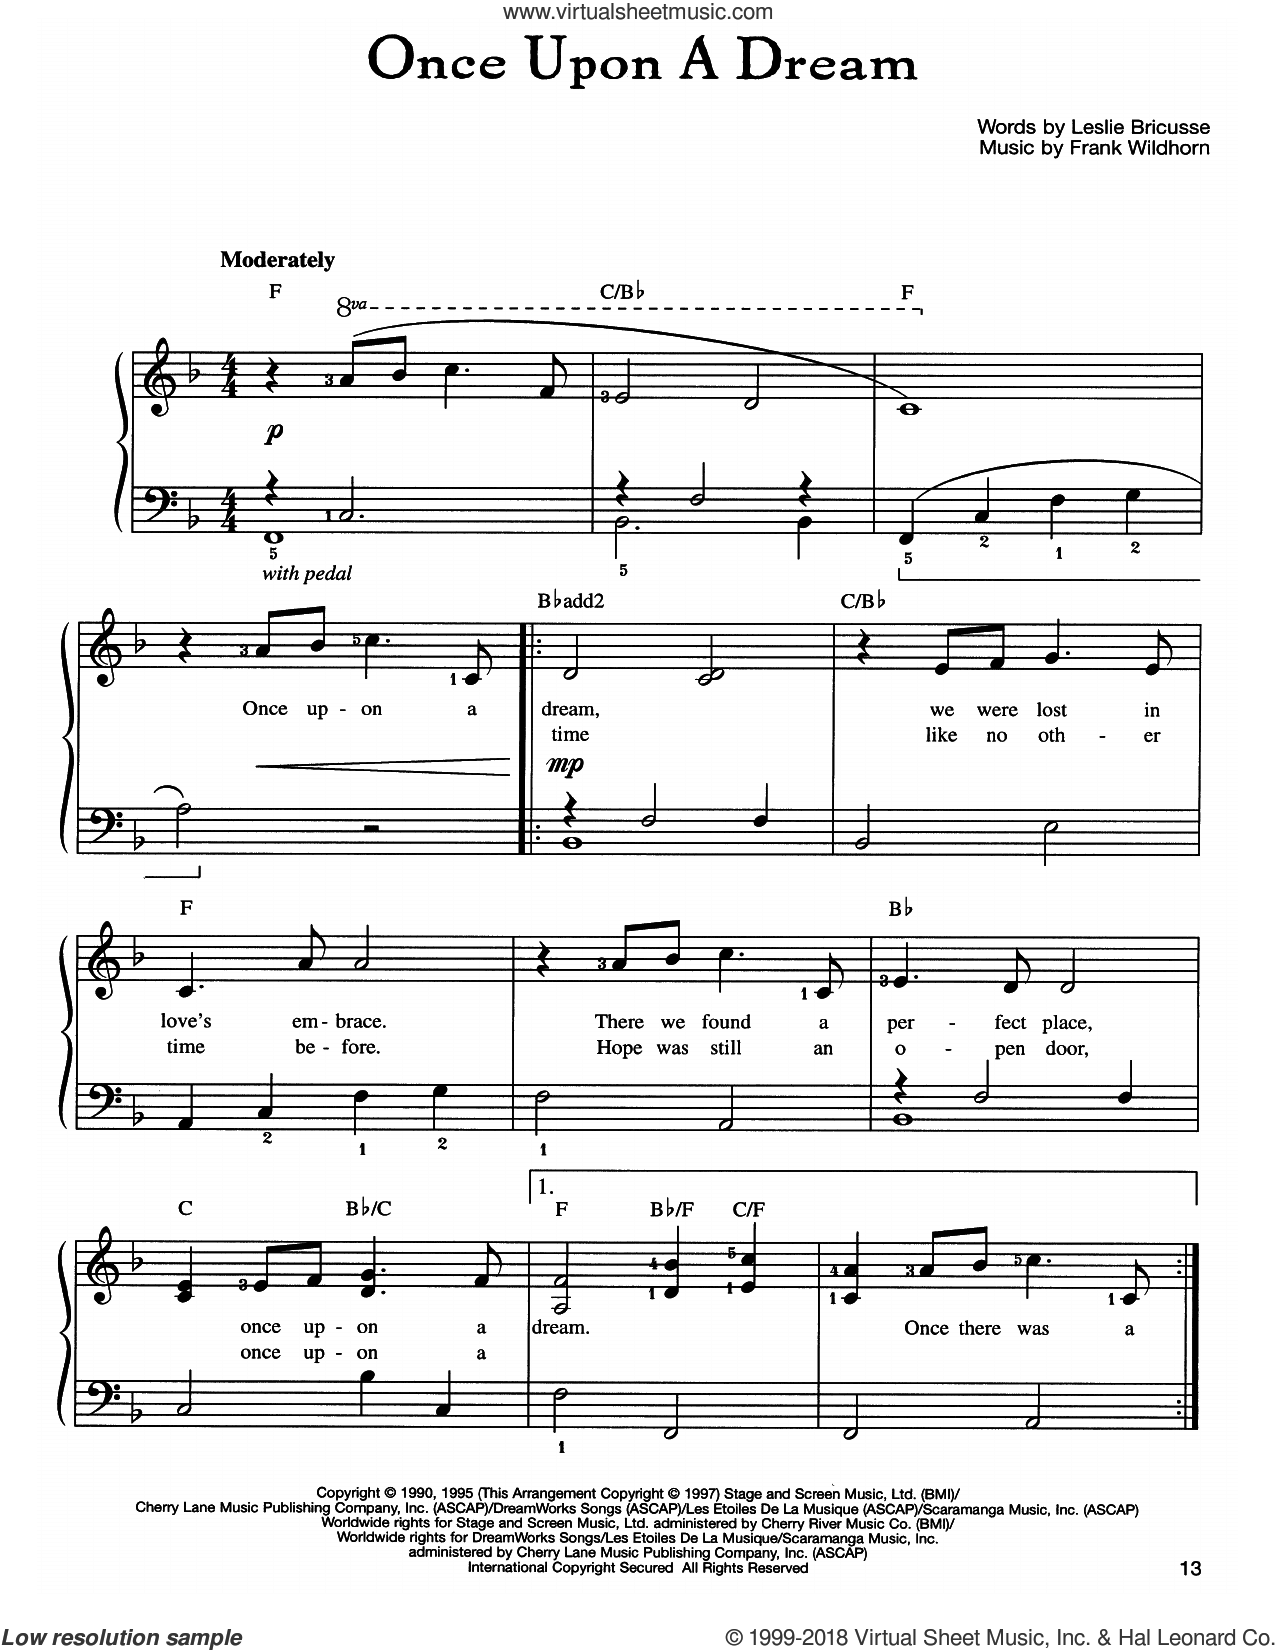 Once Upon A Dream sheet music for piano solo by Frank Wildhorn and Leslie Bricusse. Score Image Preview.